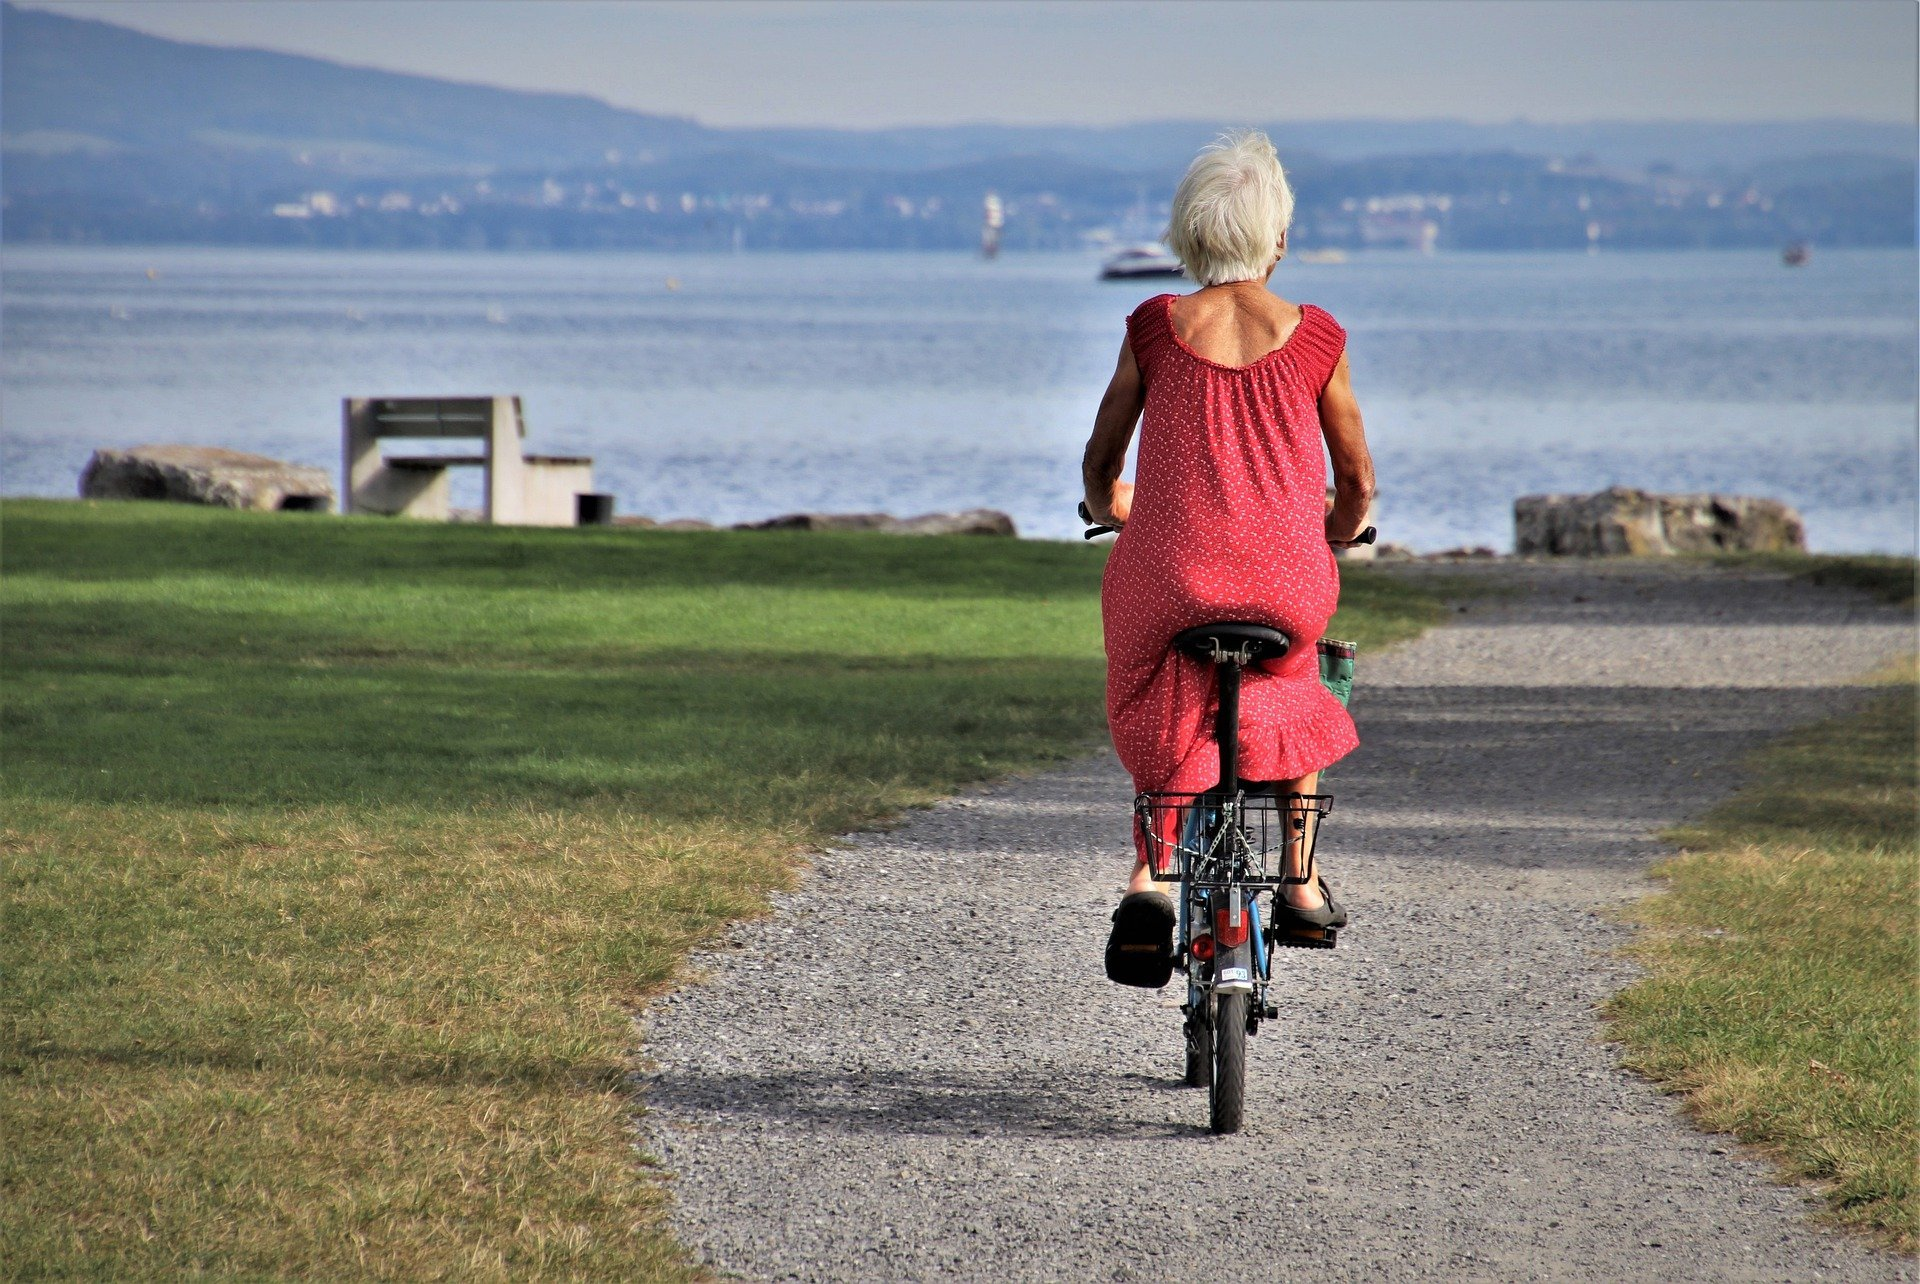 Pictured - An elderly woman riding a bike | Source: Pixabay